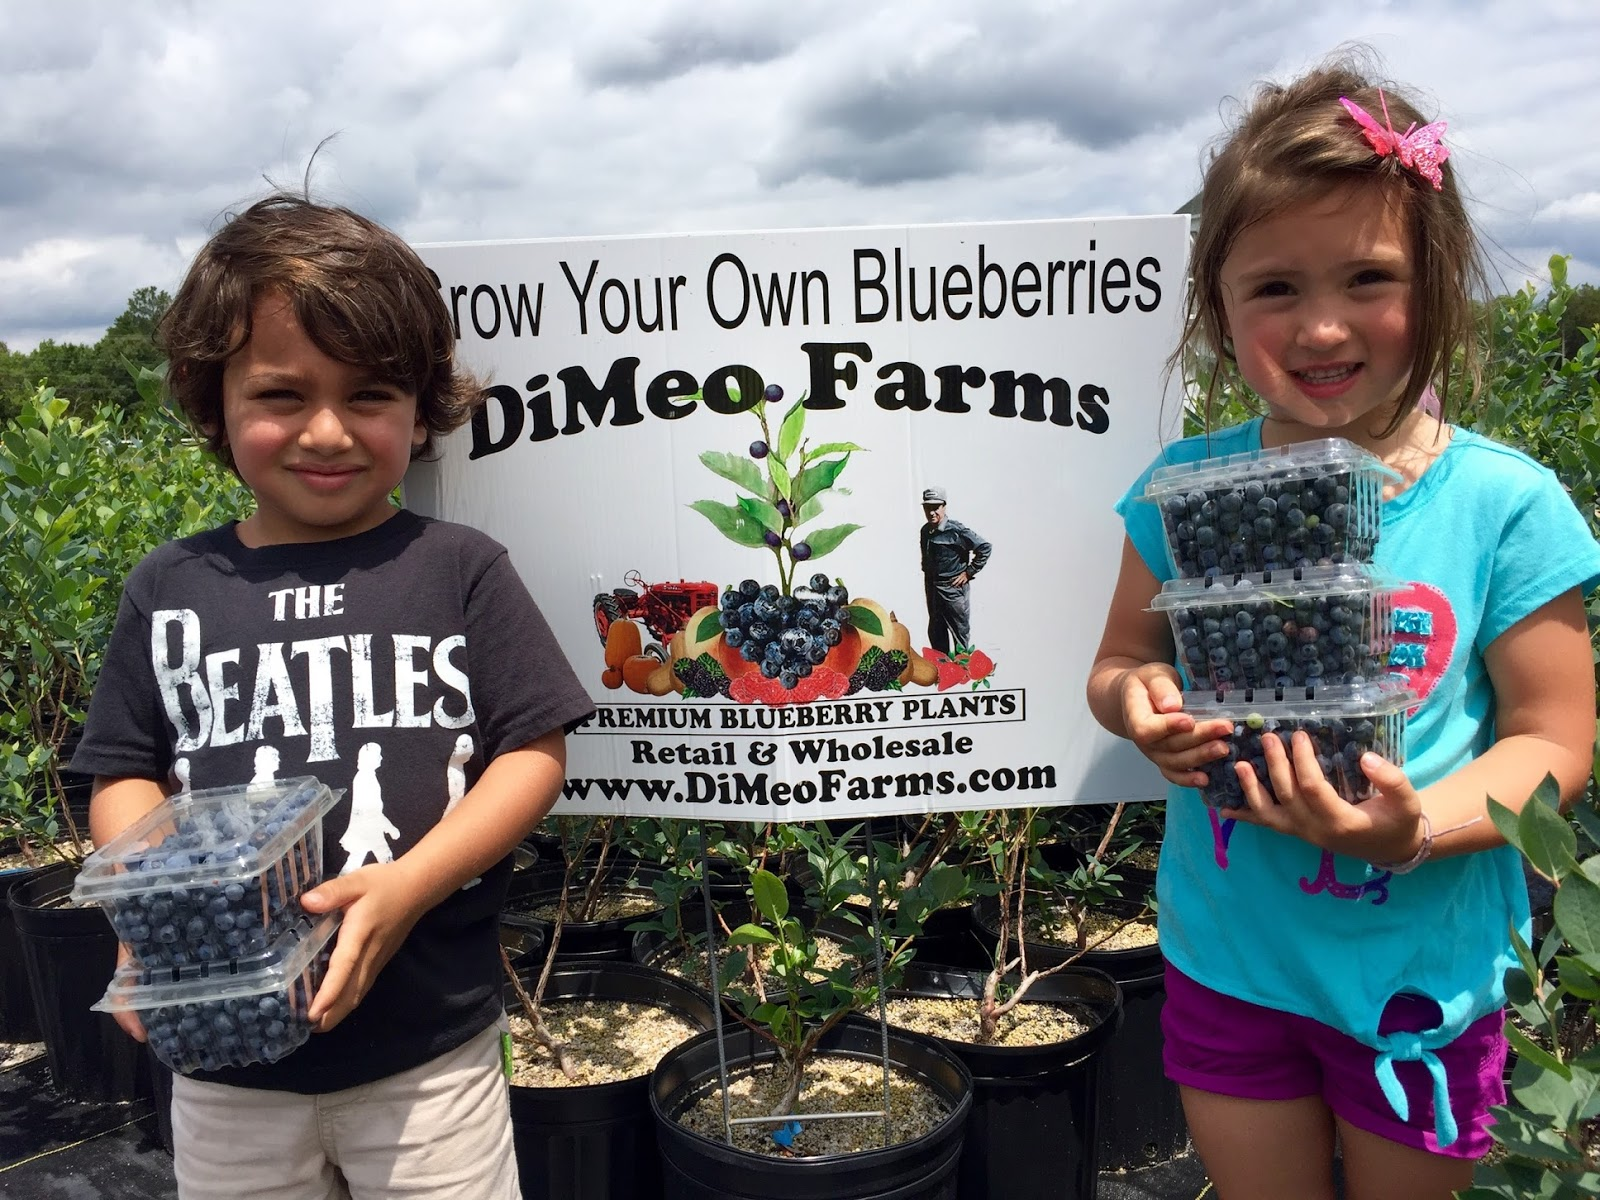 Large Blueberry Plants For Dimeo